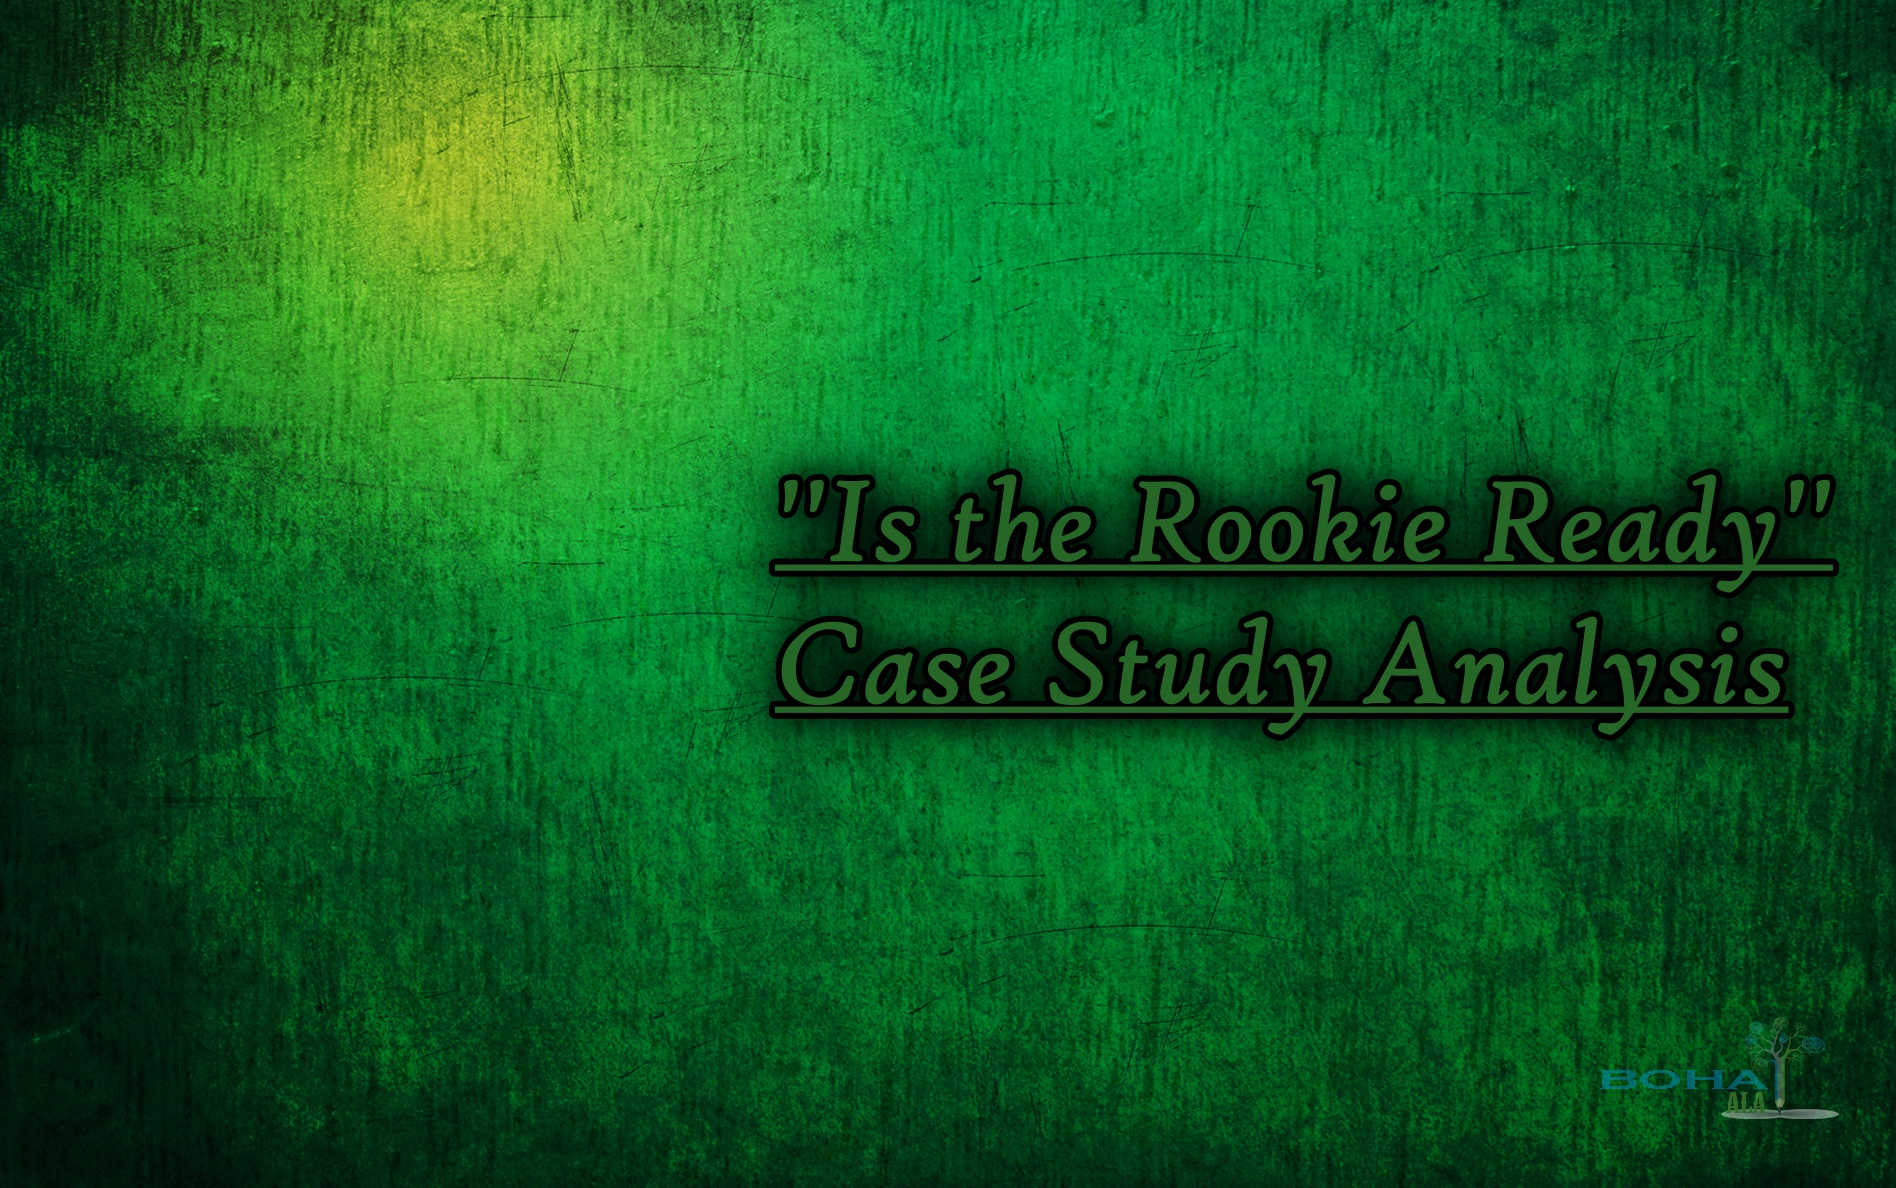 Is the Rookie Ready Case Study Analysis